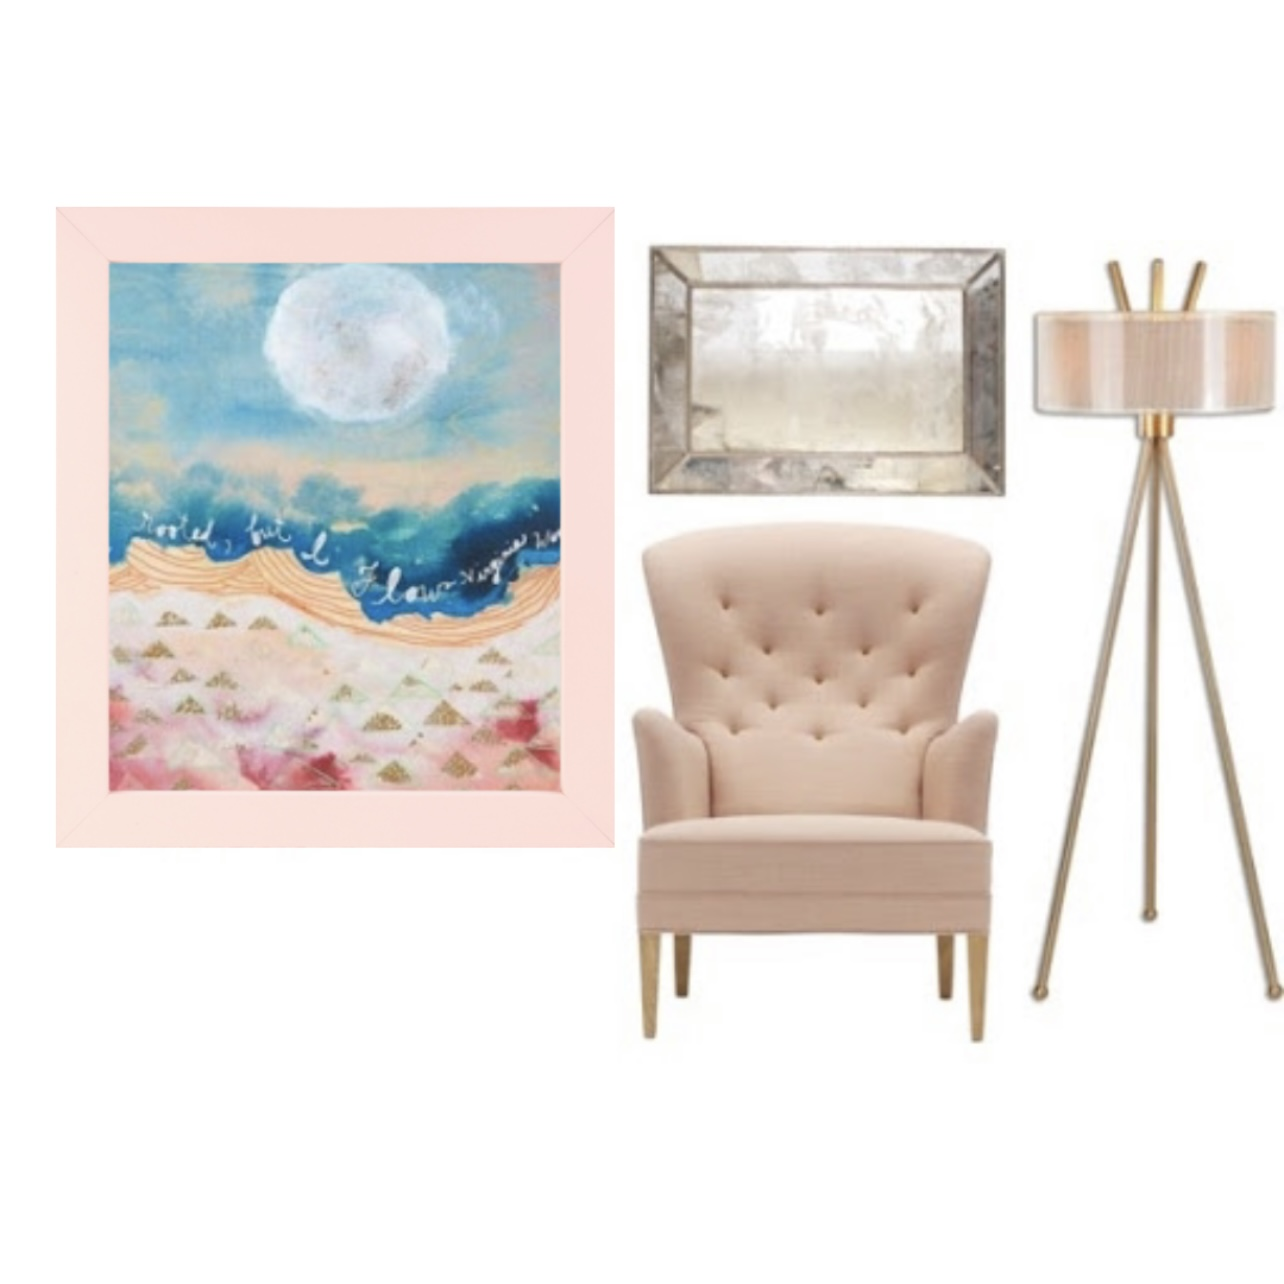 Go Pastel With Our Baby Pink Picture Frame!